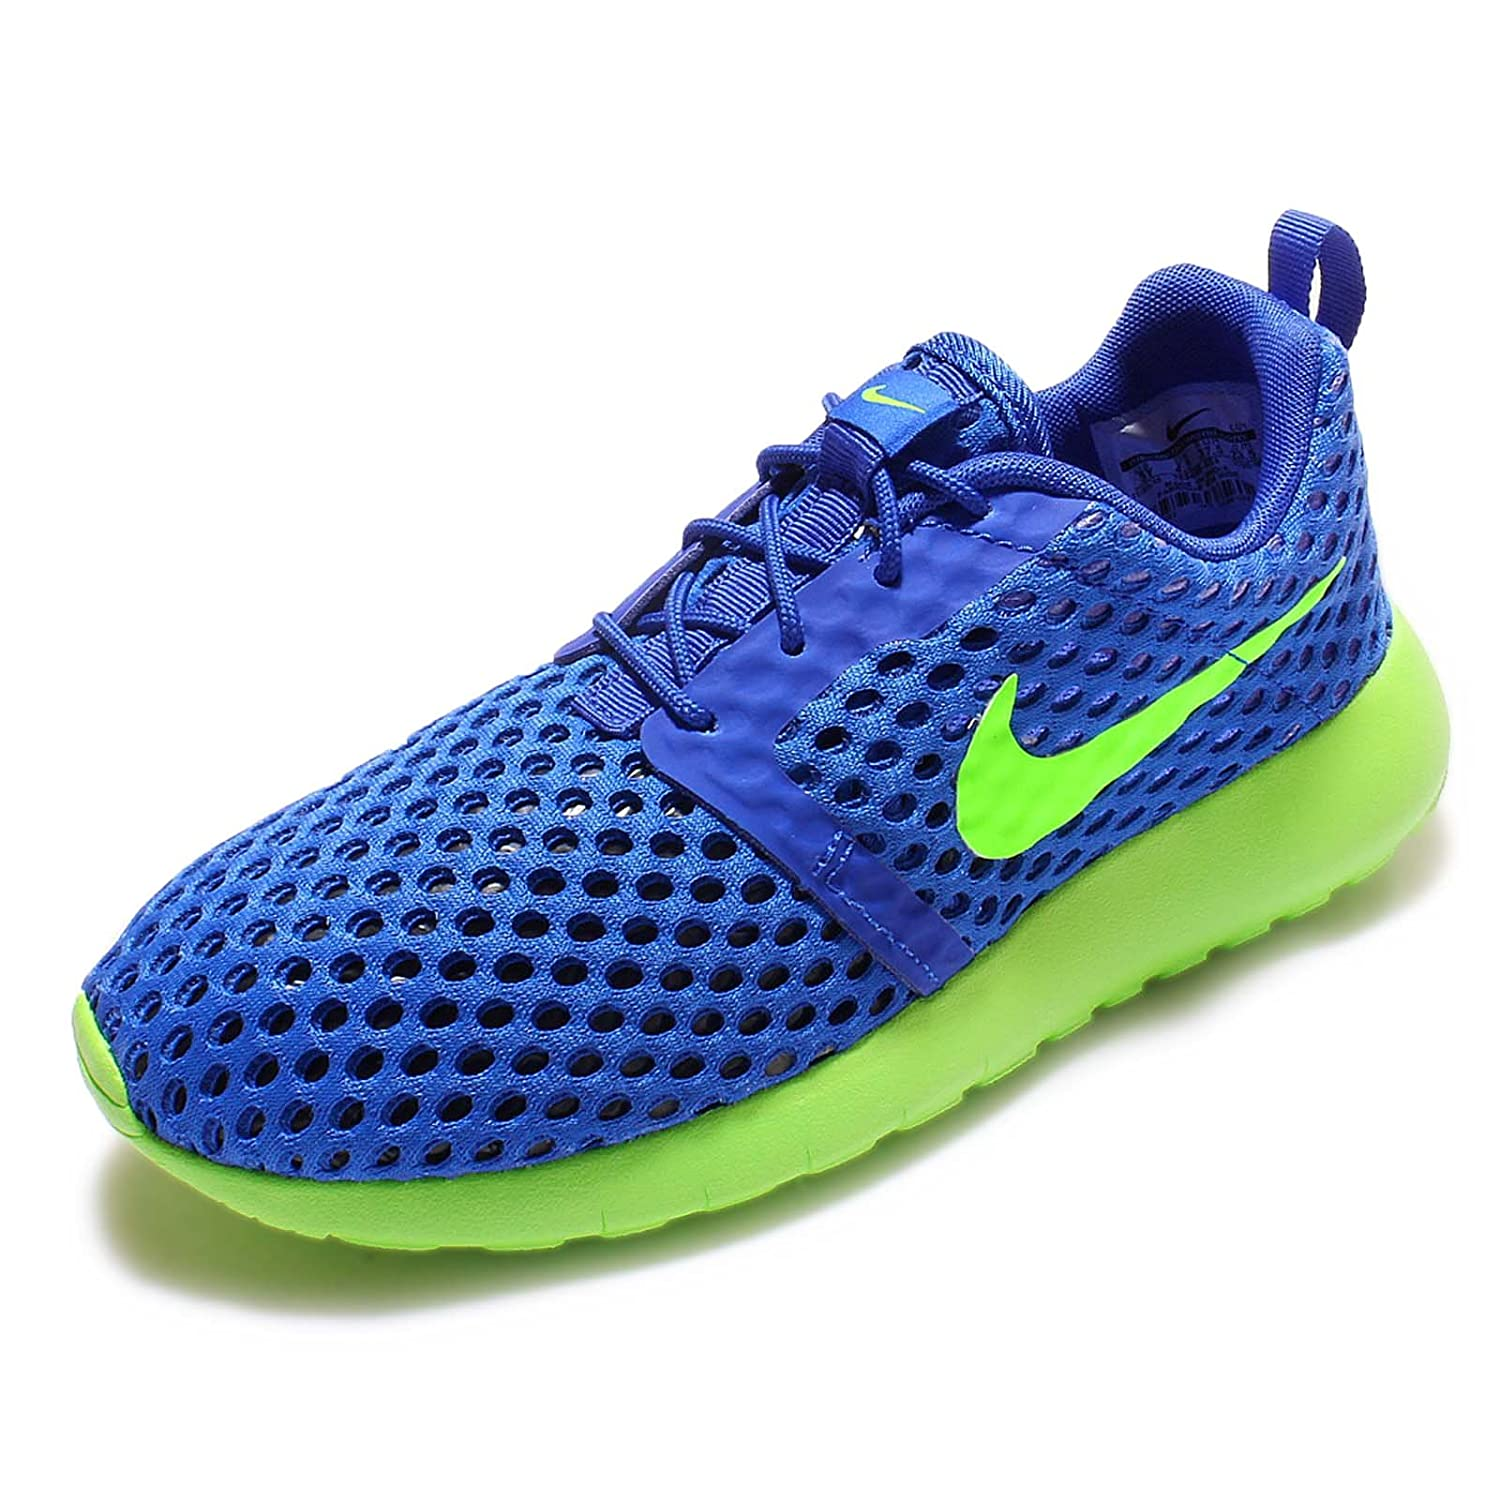 Youth Size 6 Nike Kids Roshe One Flight Weight GS RACER BLUE//ELECTRIC GREEN